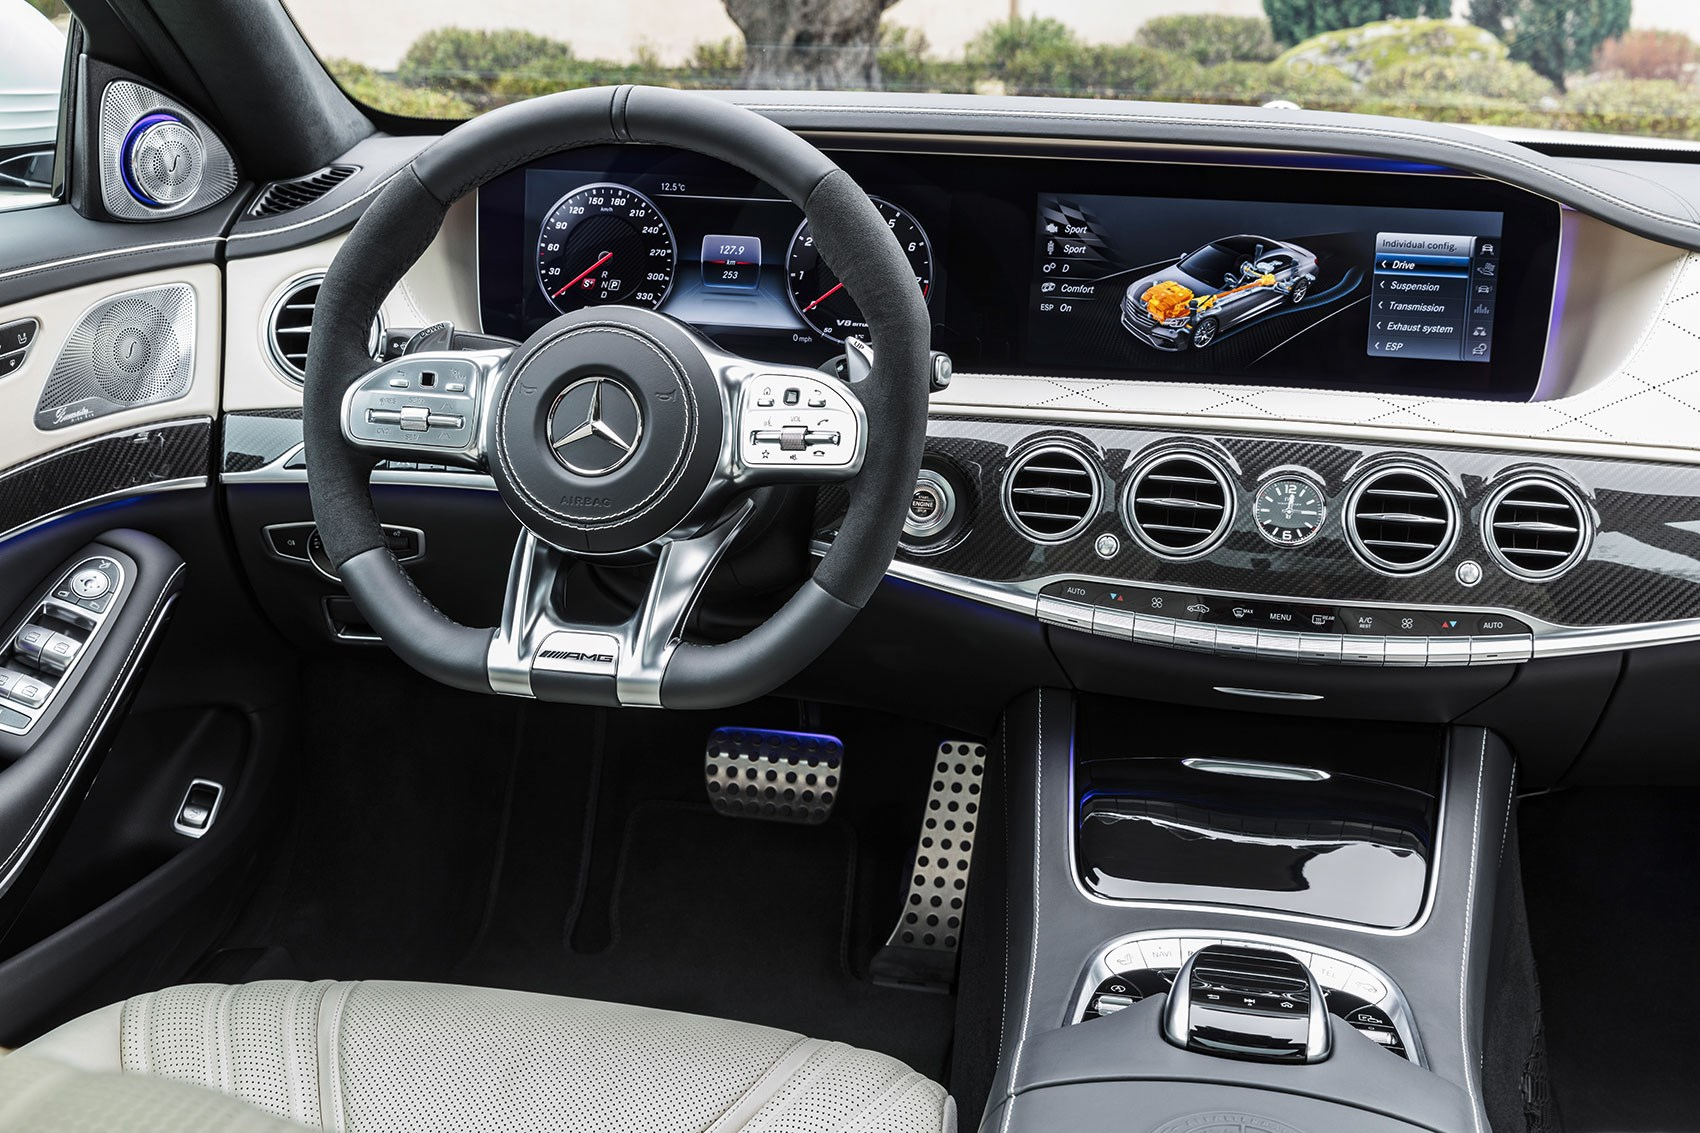 New Mercedes-Benz S-class facelift (2017): specs, news and photos by CAR Magazine